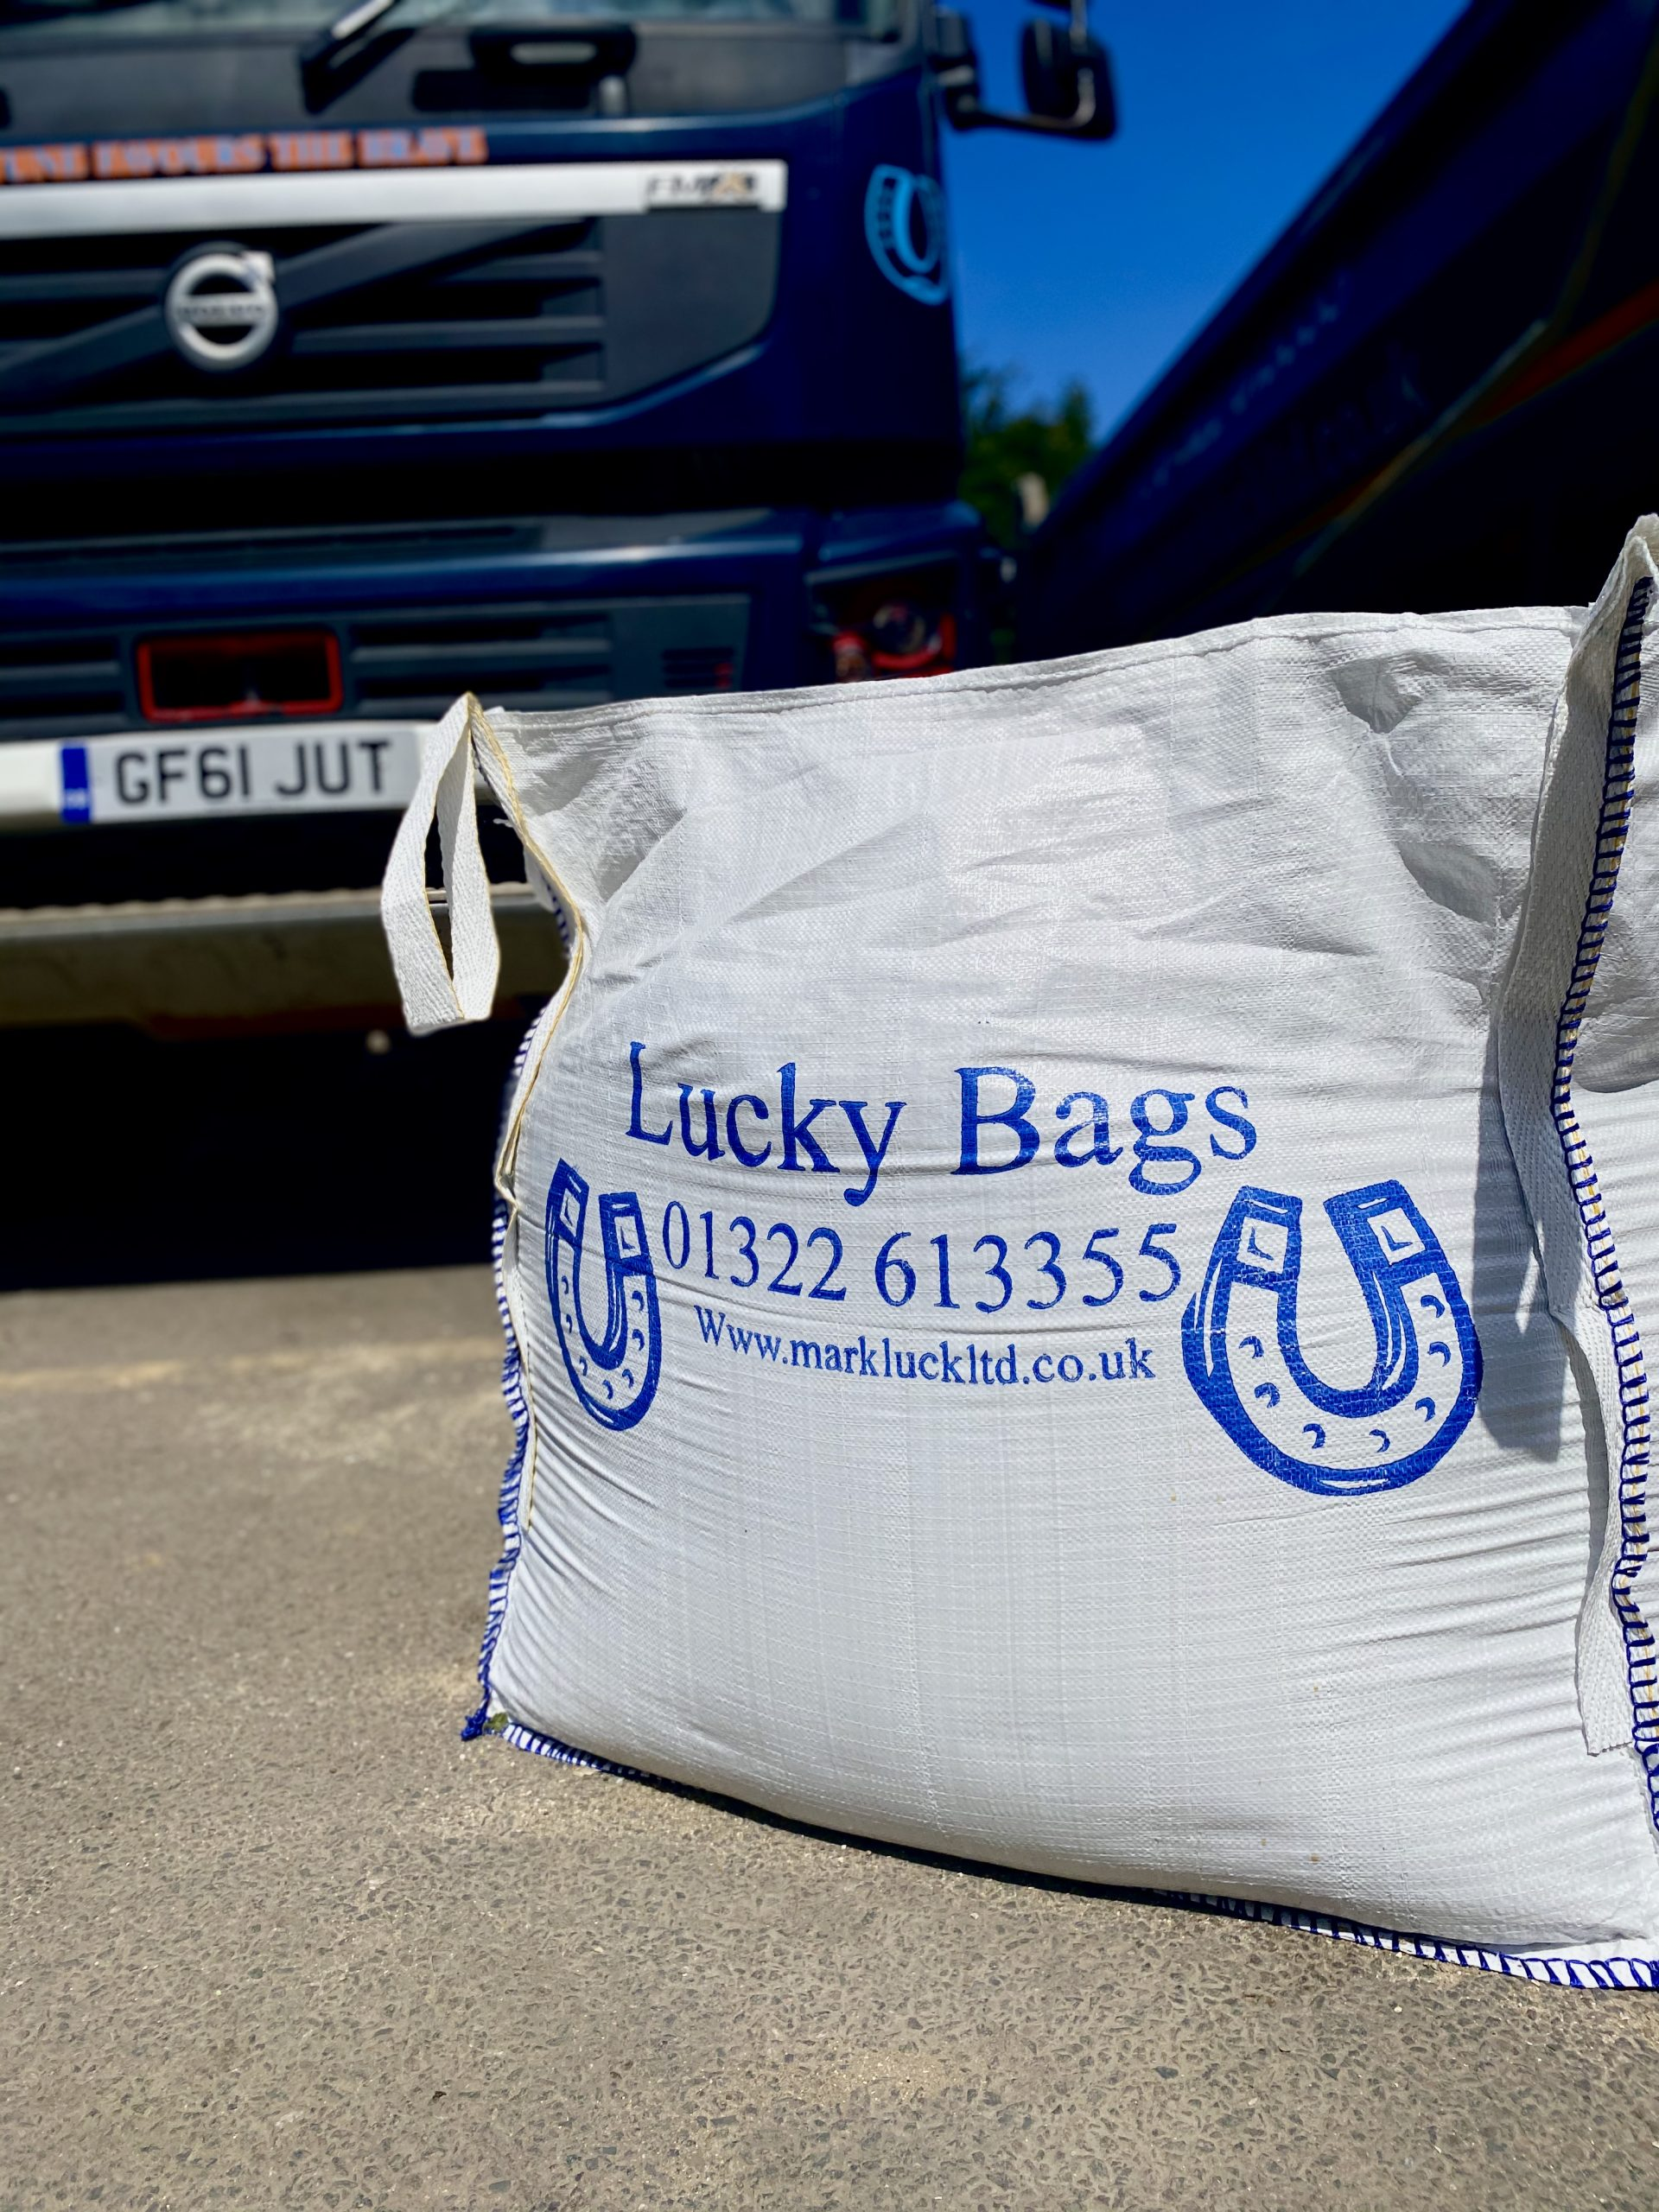 lucky bags supply